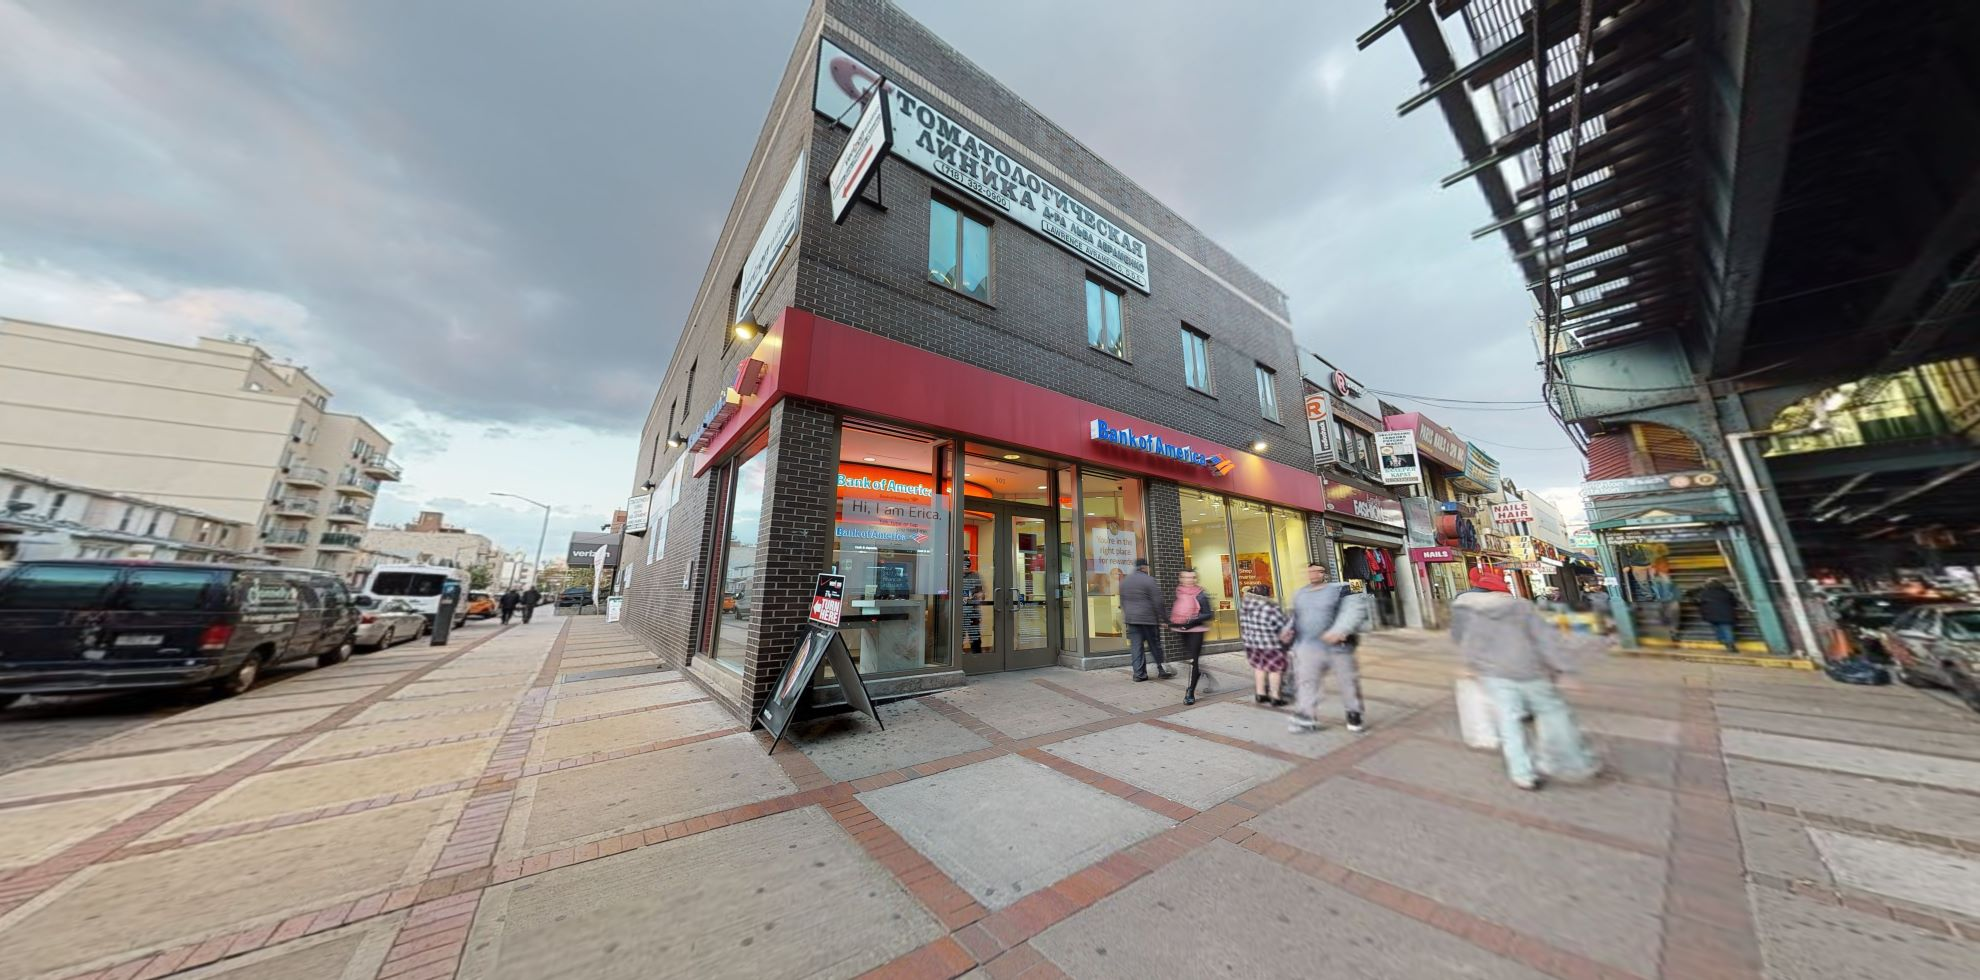 Bank of America financial center with walk-up ATM | 501 Brighton Beach Ave, Brooklyn, NY 11235